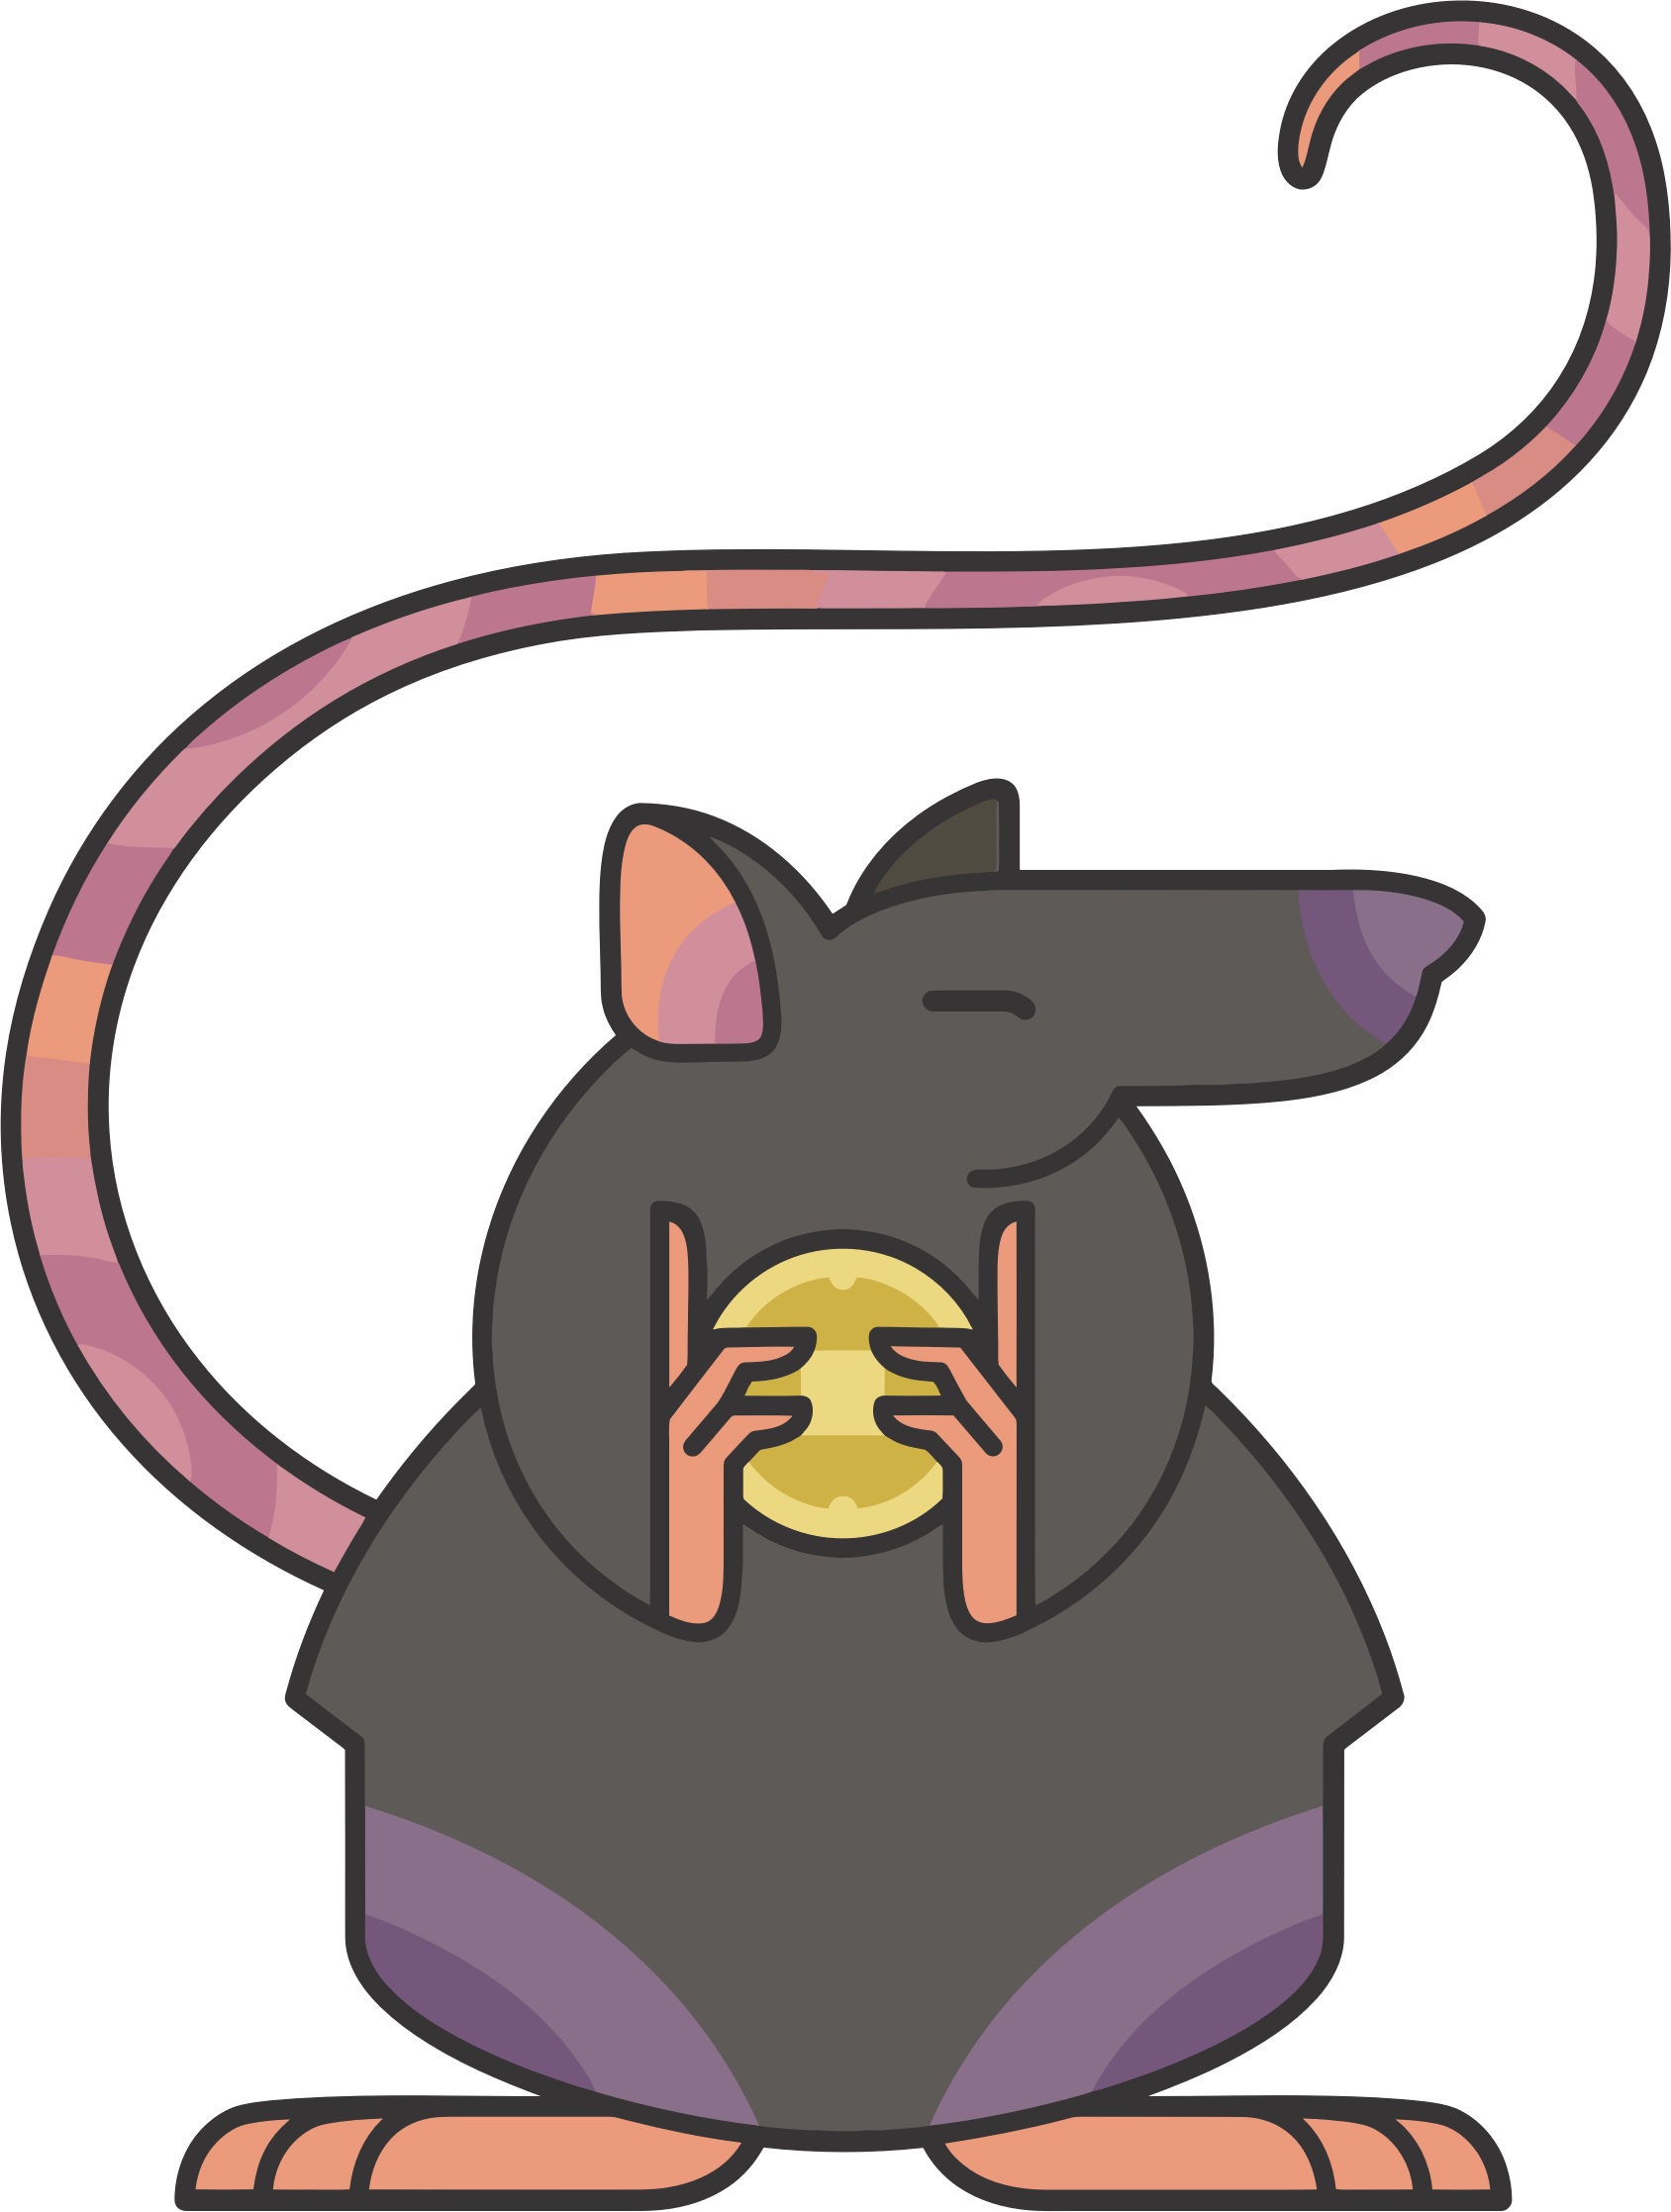 Clipart png cartoon. Stylized rat icons free